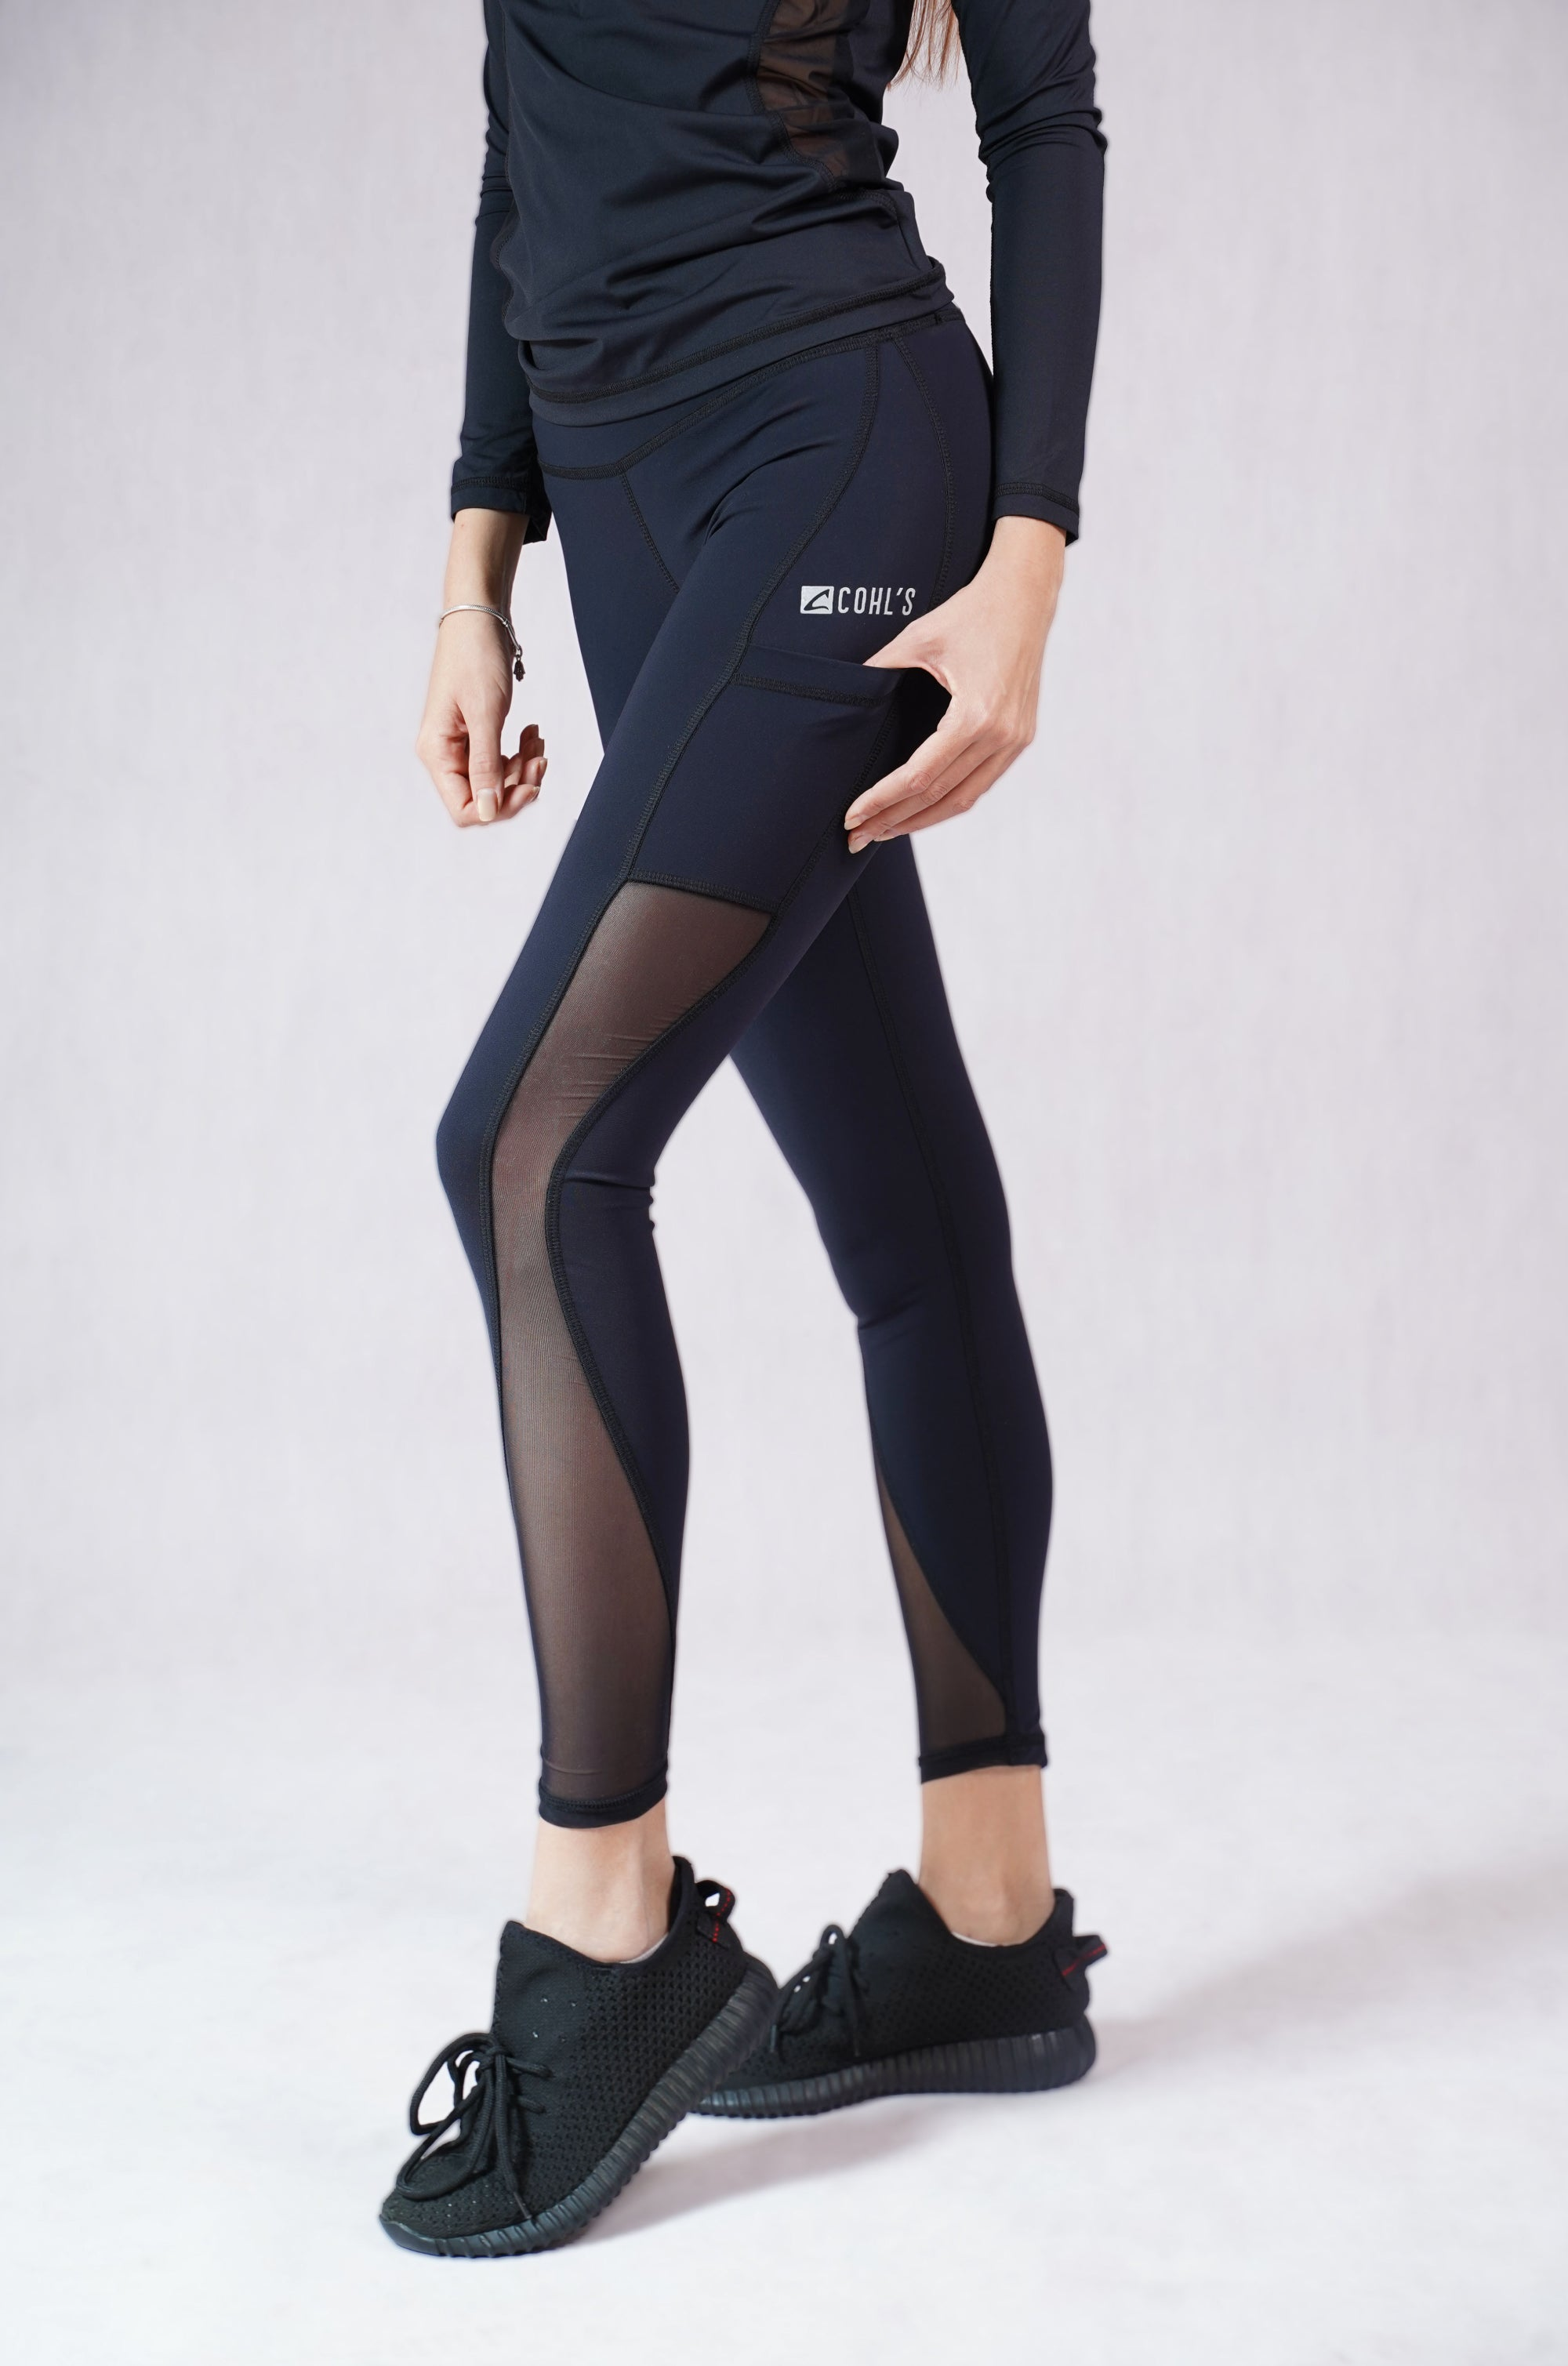 Leggings in Lace with Pocket-C122016